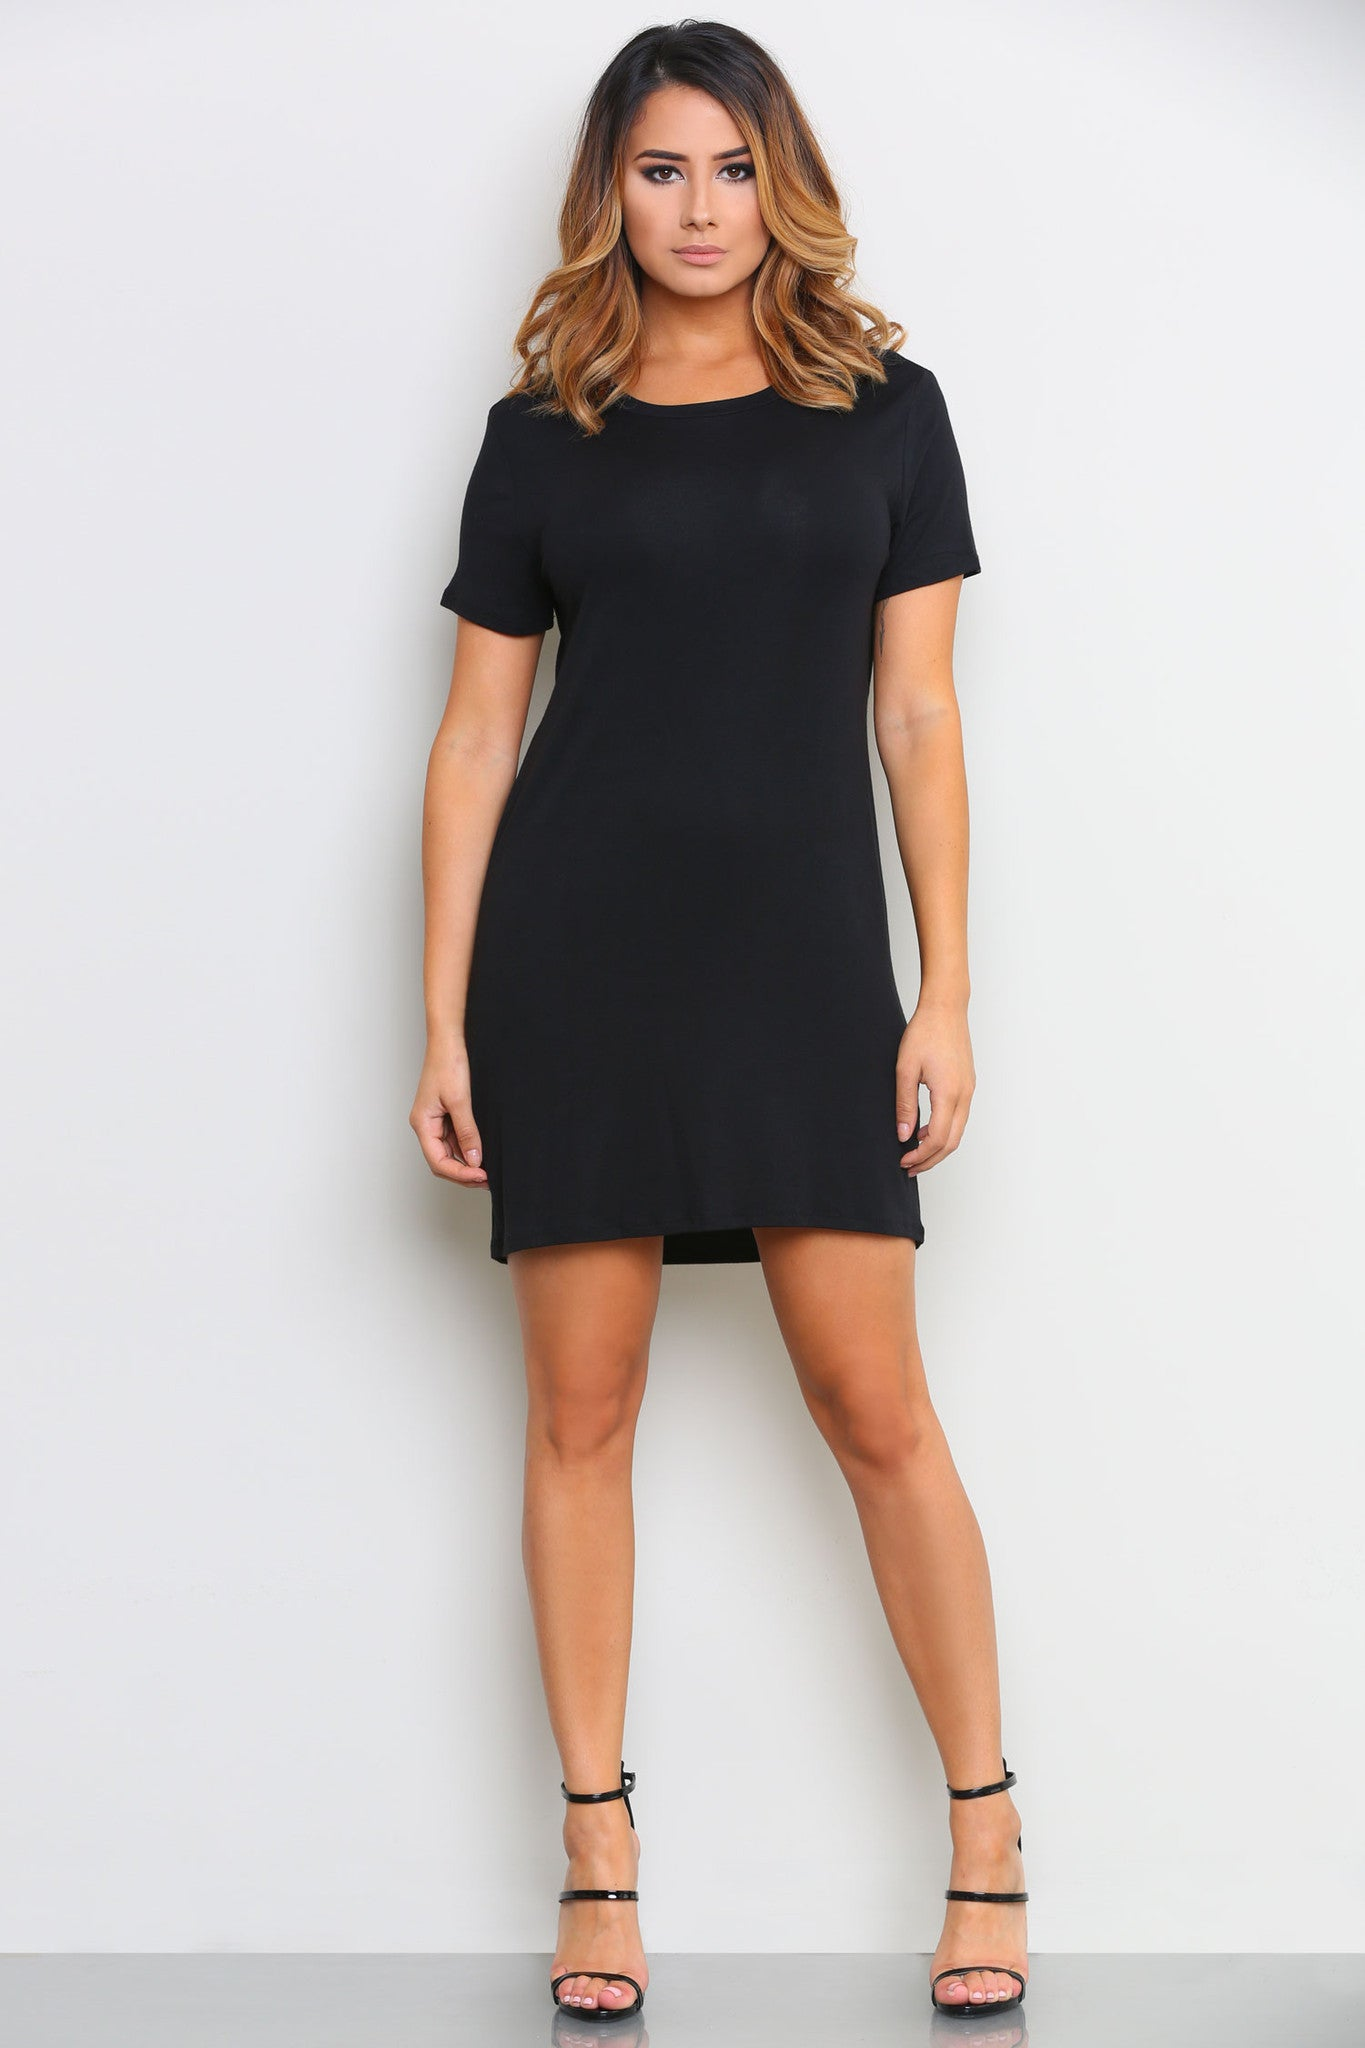 AUTUMN T-SHIRT DRESS - Glam Envy - 1